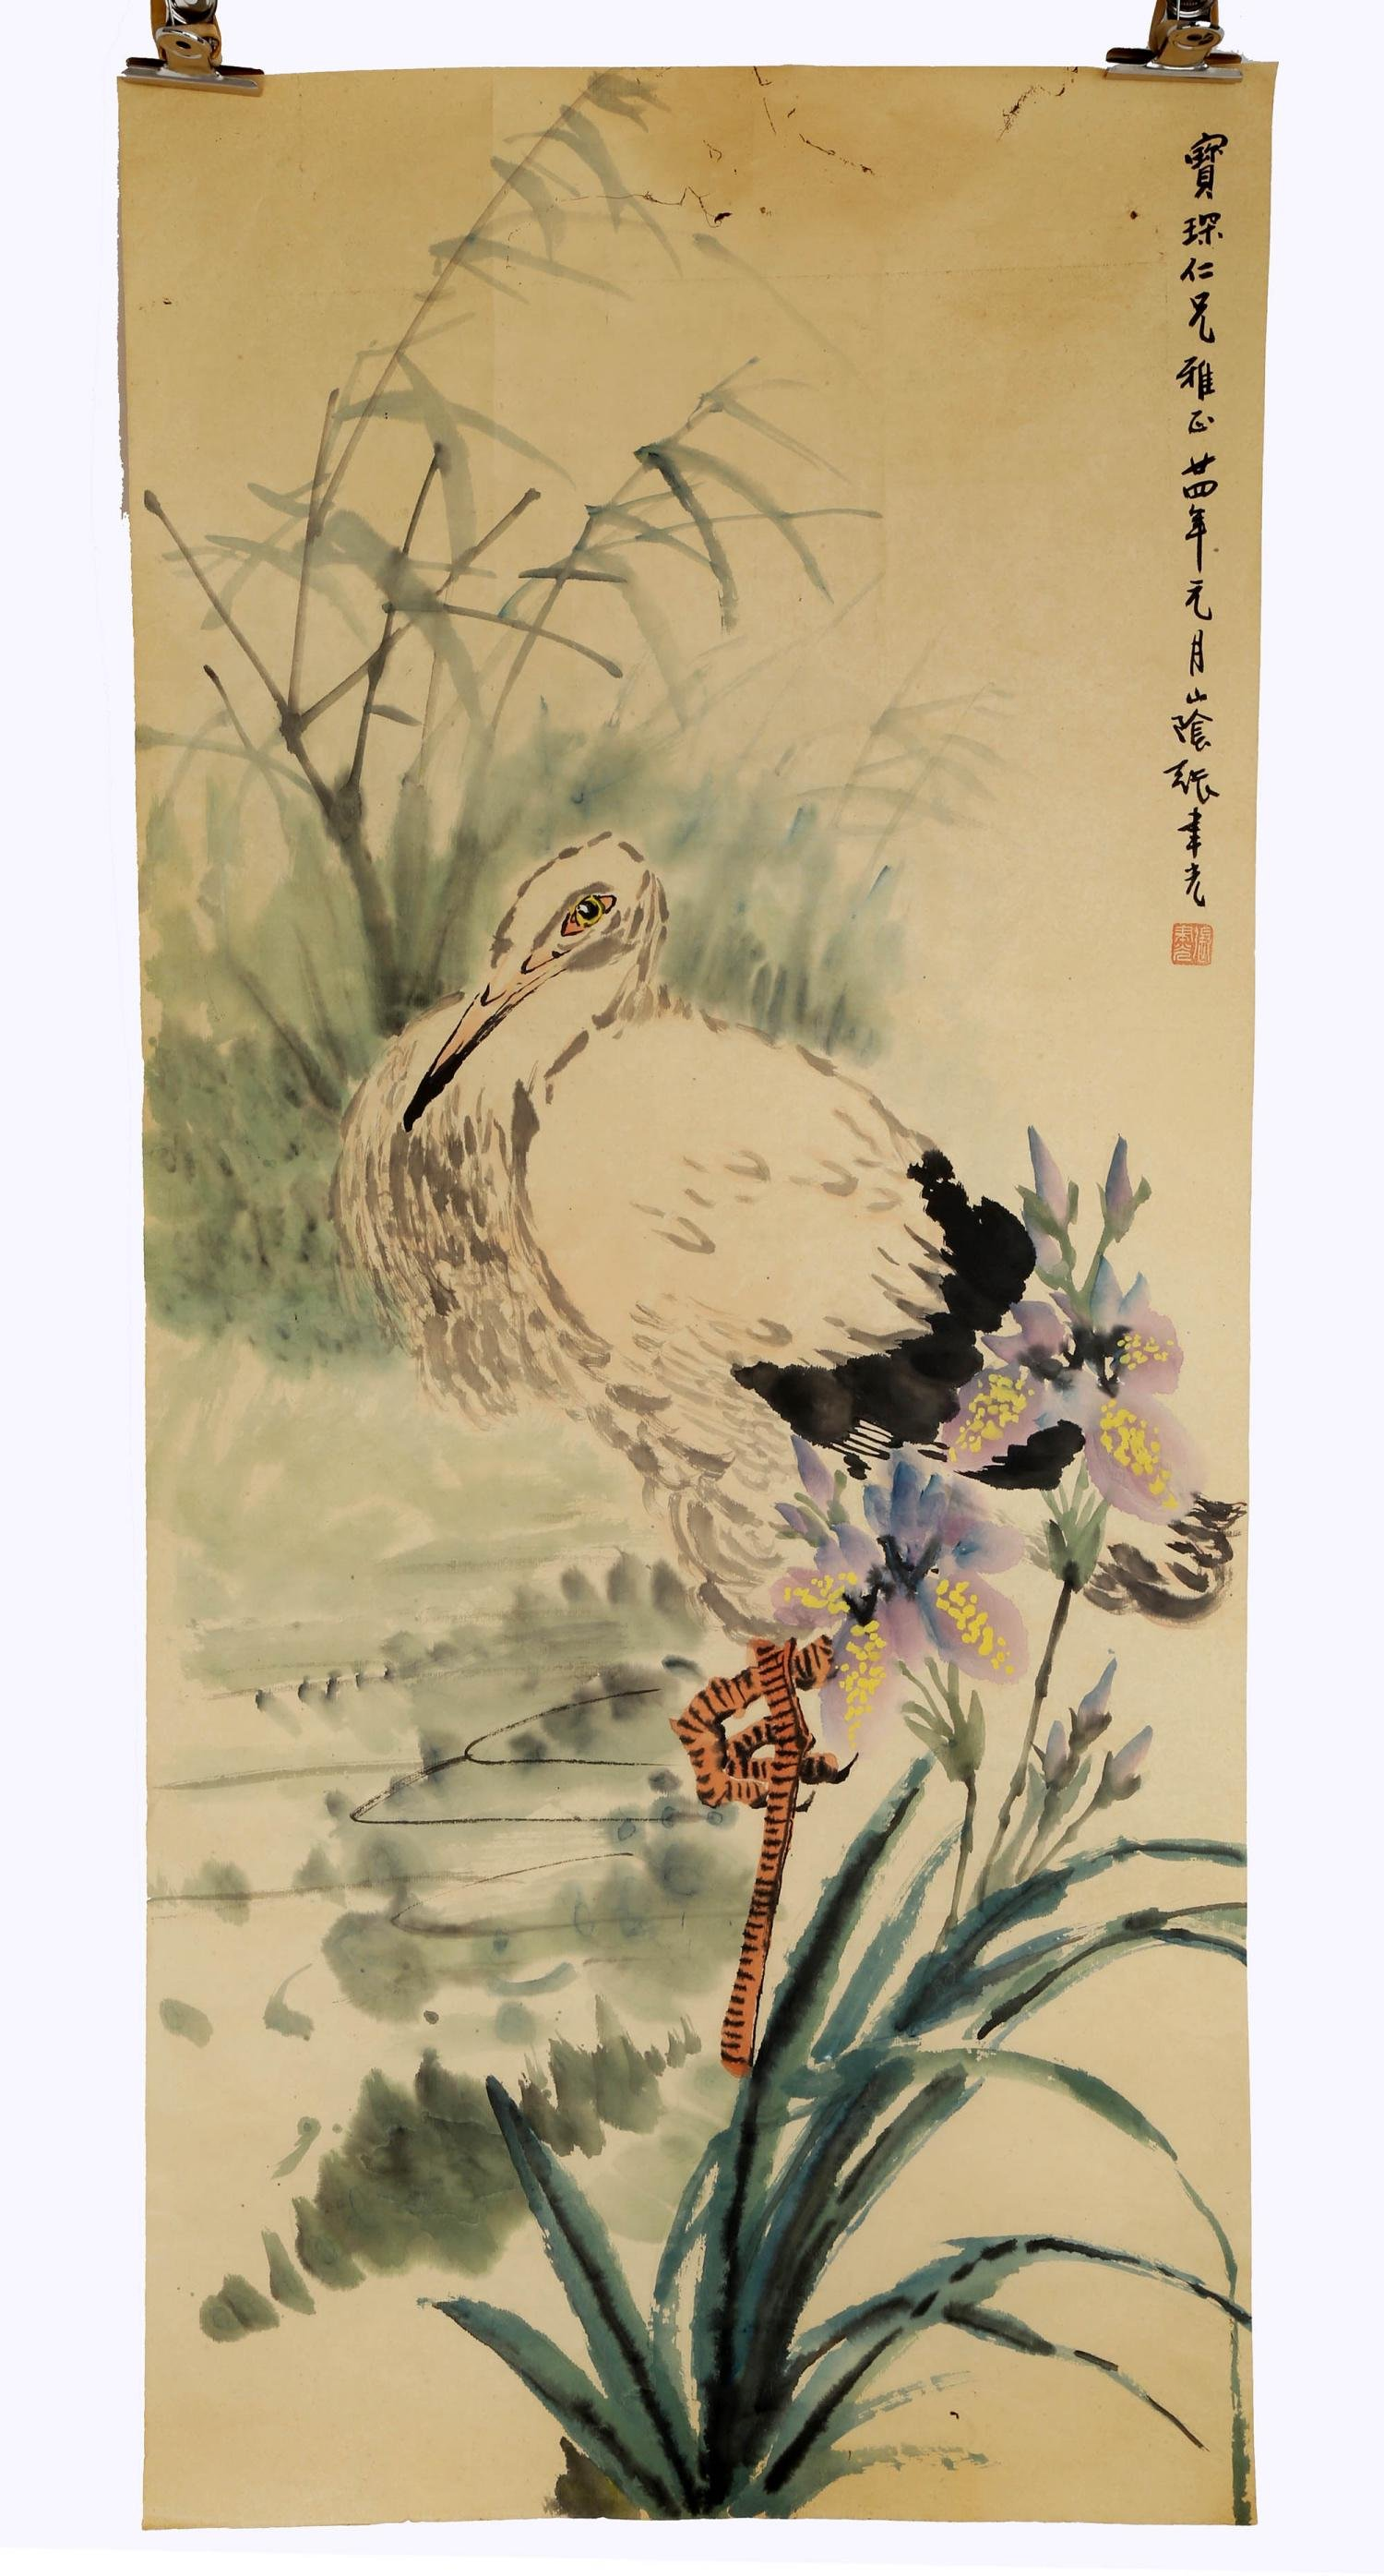 SIGNED ZHANG YUGUANG (1885-1968). A INK AND COLOR ON